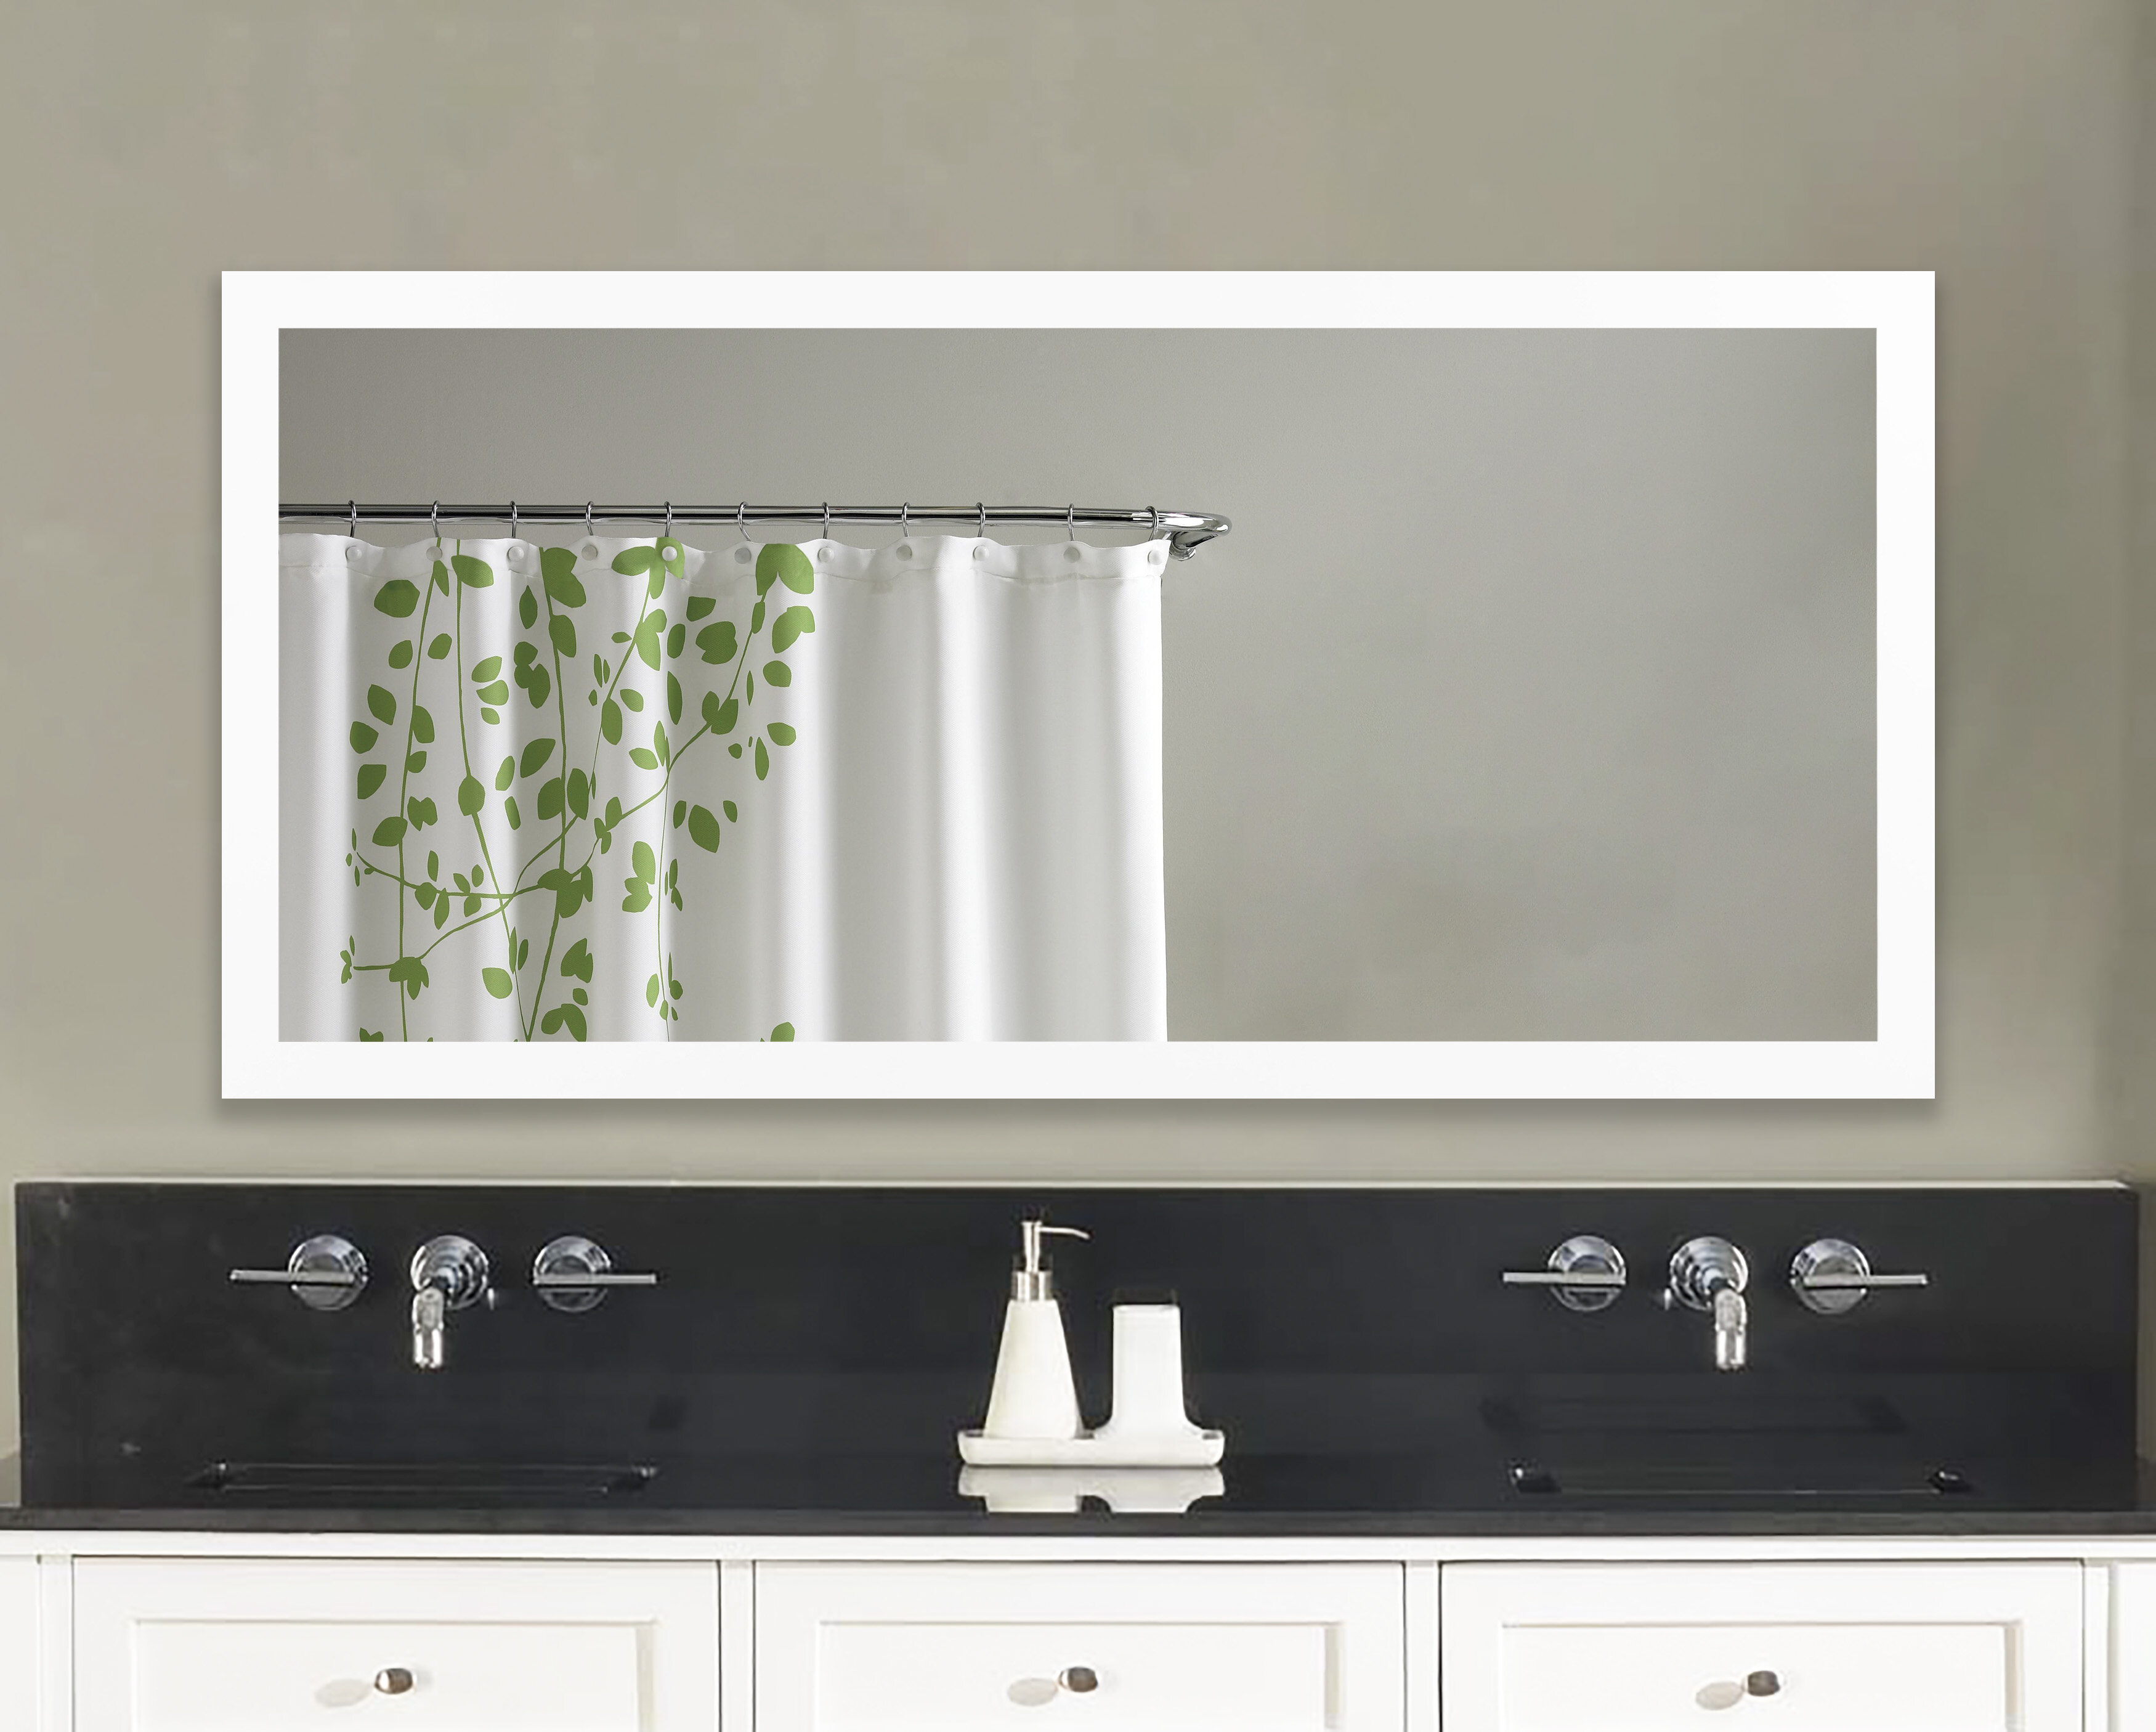 Industrial Modern & Contemporary Wall Mirror With Regard To Industrial Modern & Contemporary Wall Mirrors (View 12 of 30)